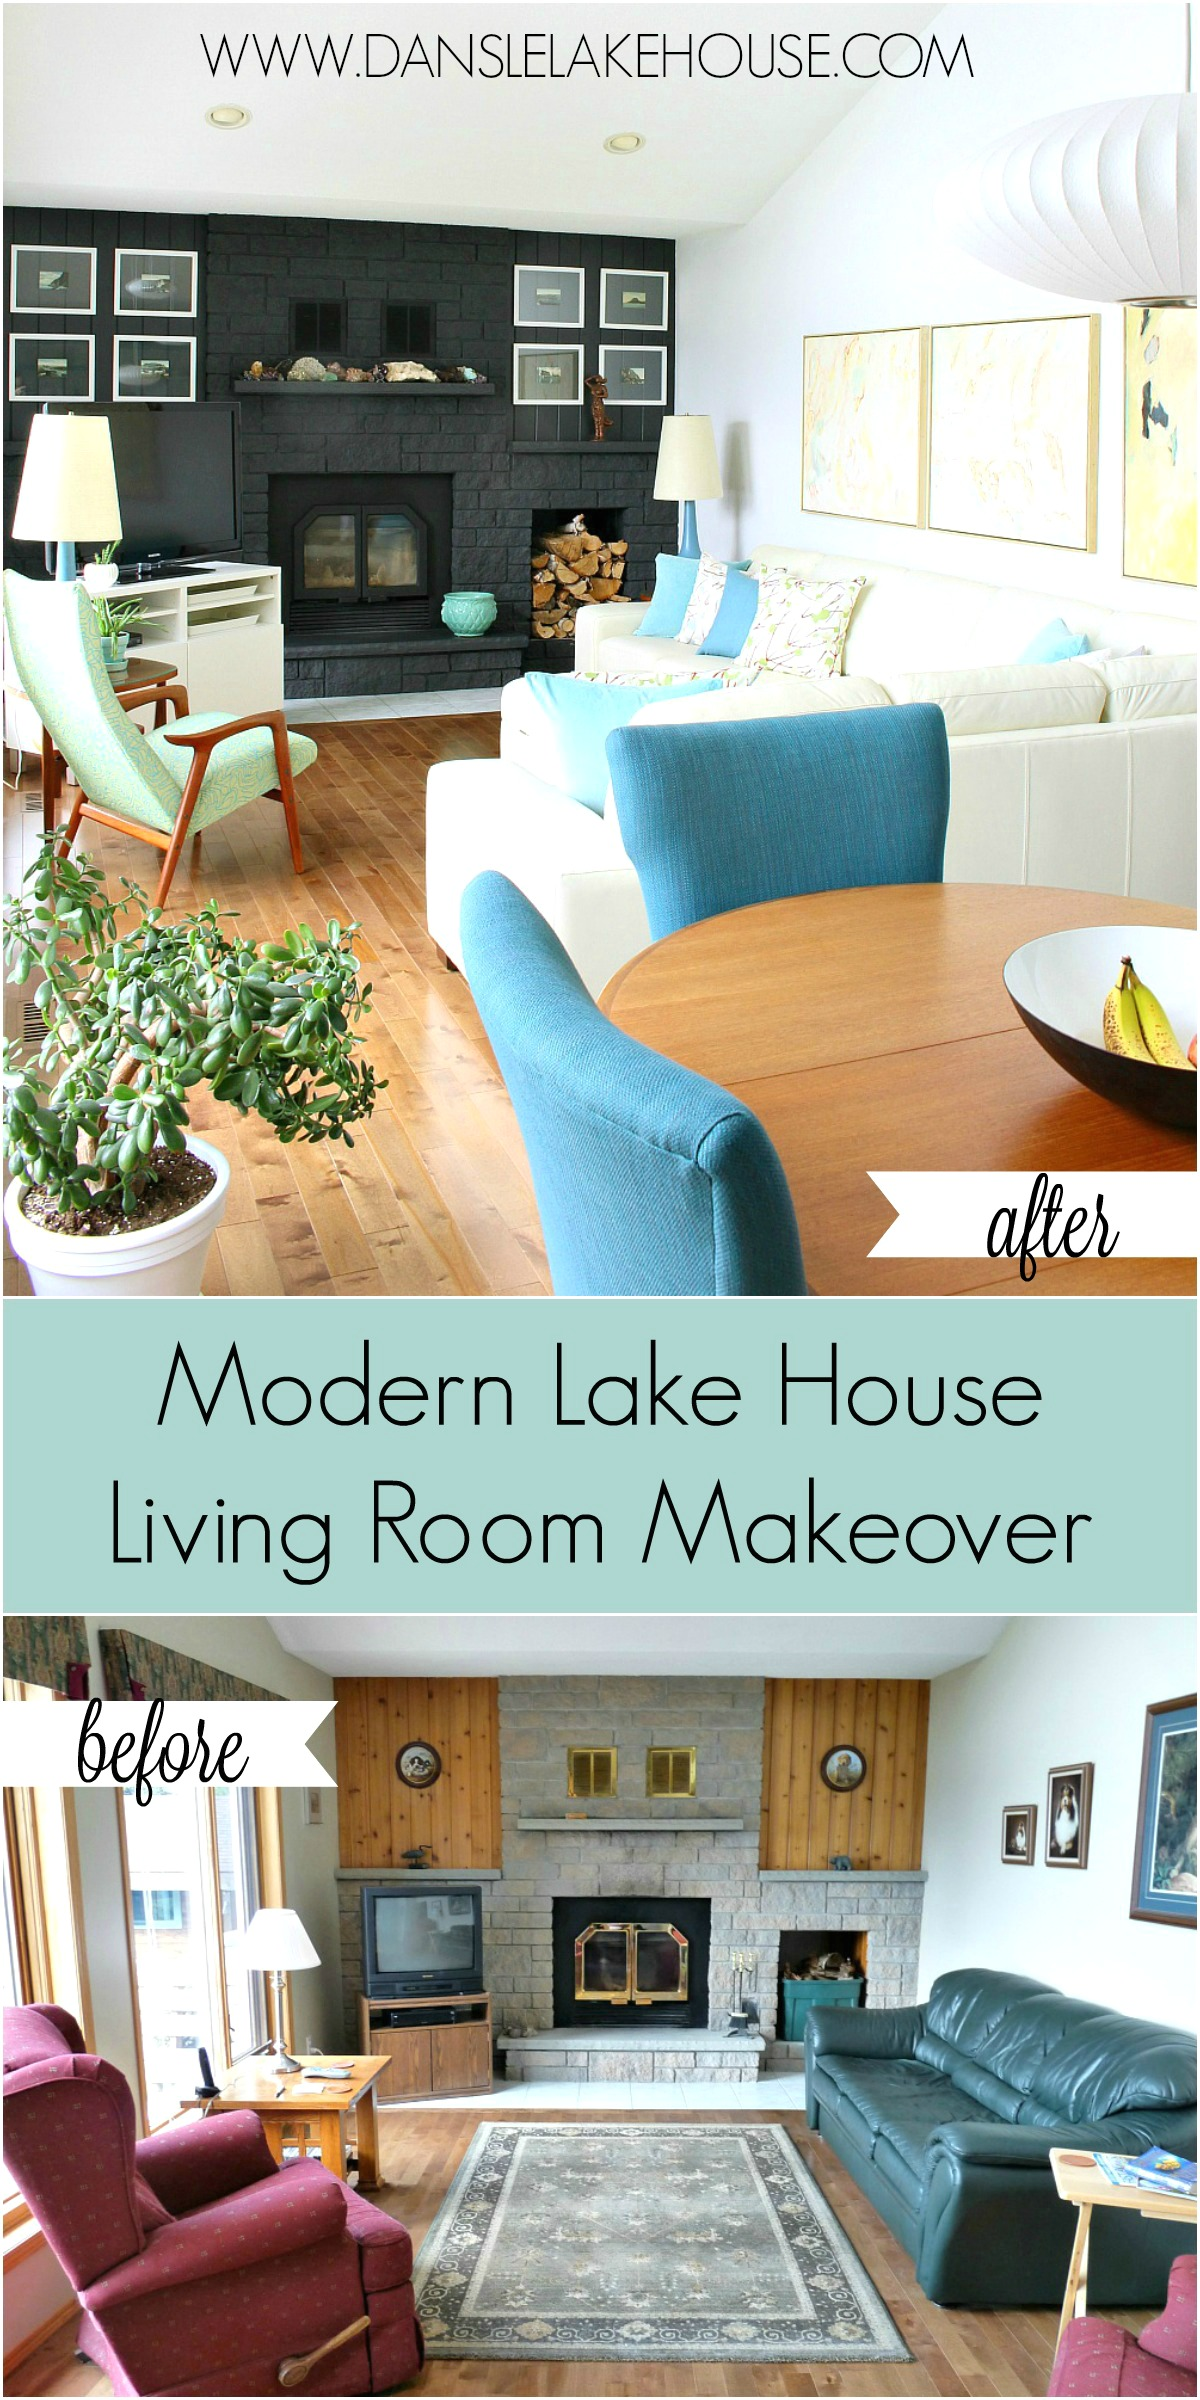 Modern Lake House Living Room Makeover